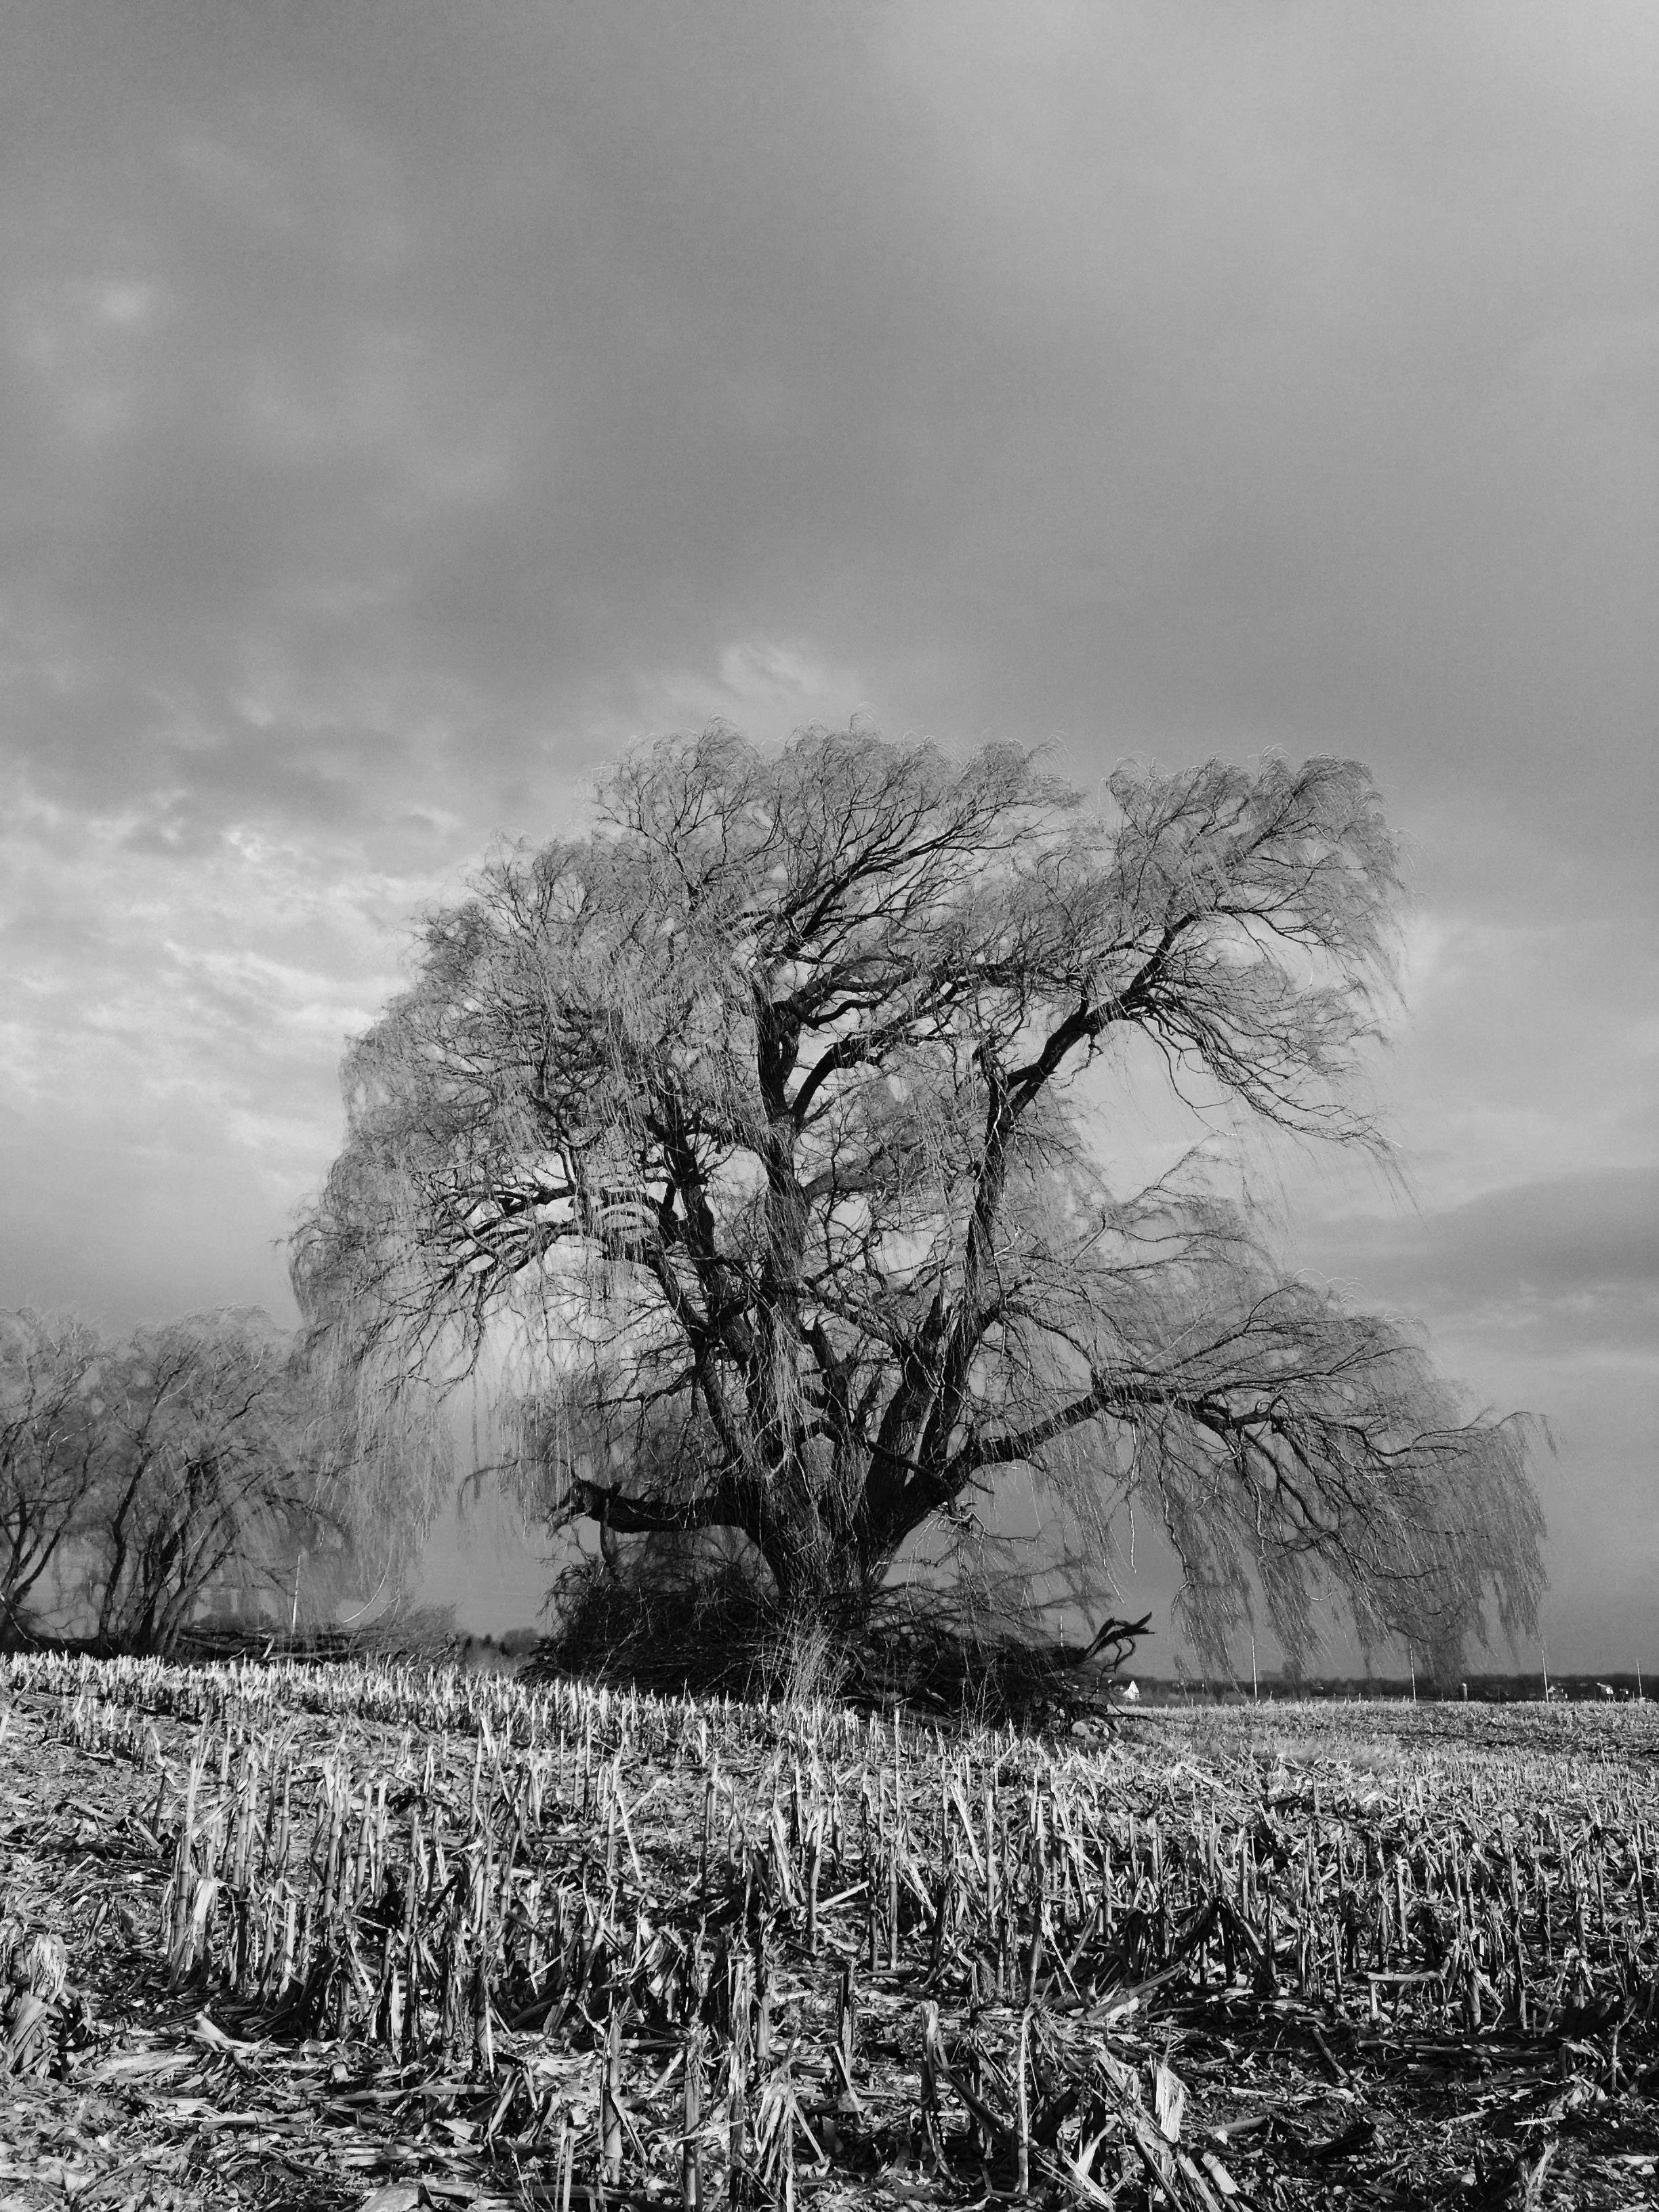 I took this shot on the way home from work. The sun was just coming up and really accenting the tree, while the clouds were moving in from the west ahead of a storm. I liked the contrast between the sun and the clouds and I found it to be even more dramatic in black and white.